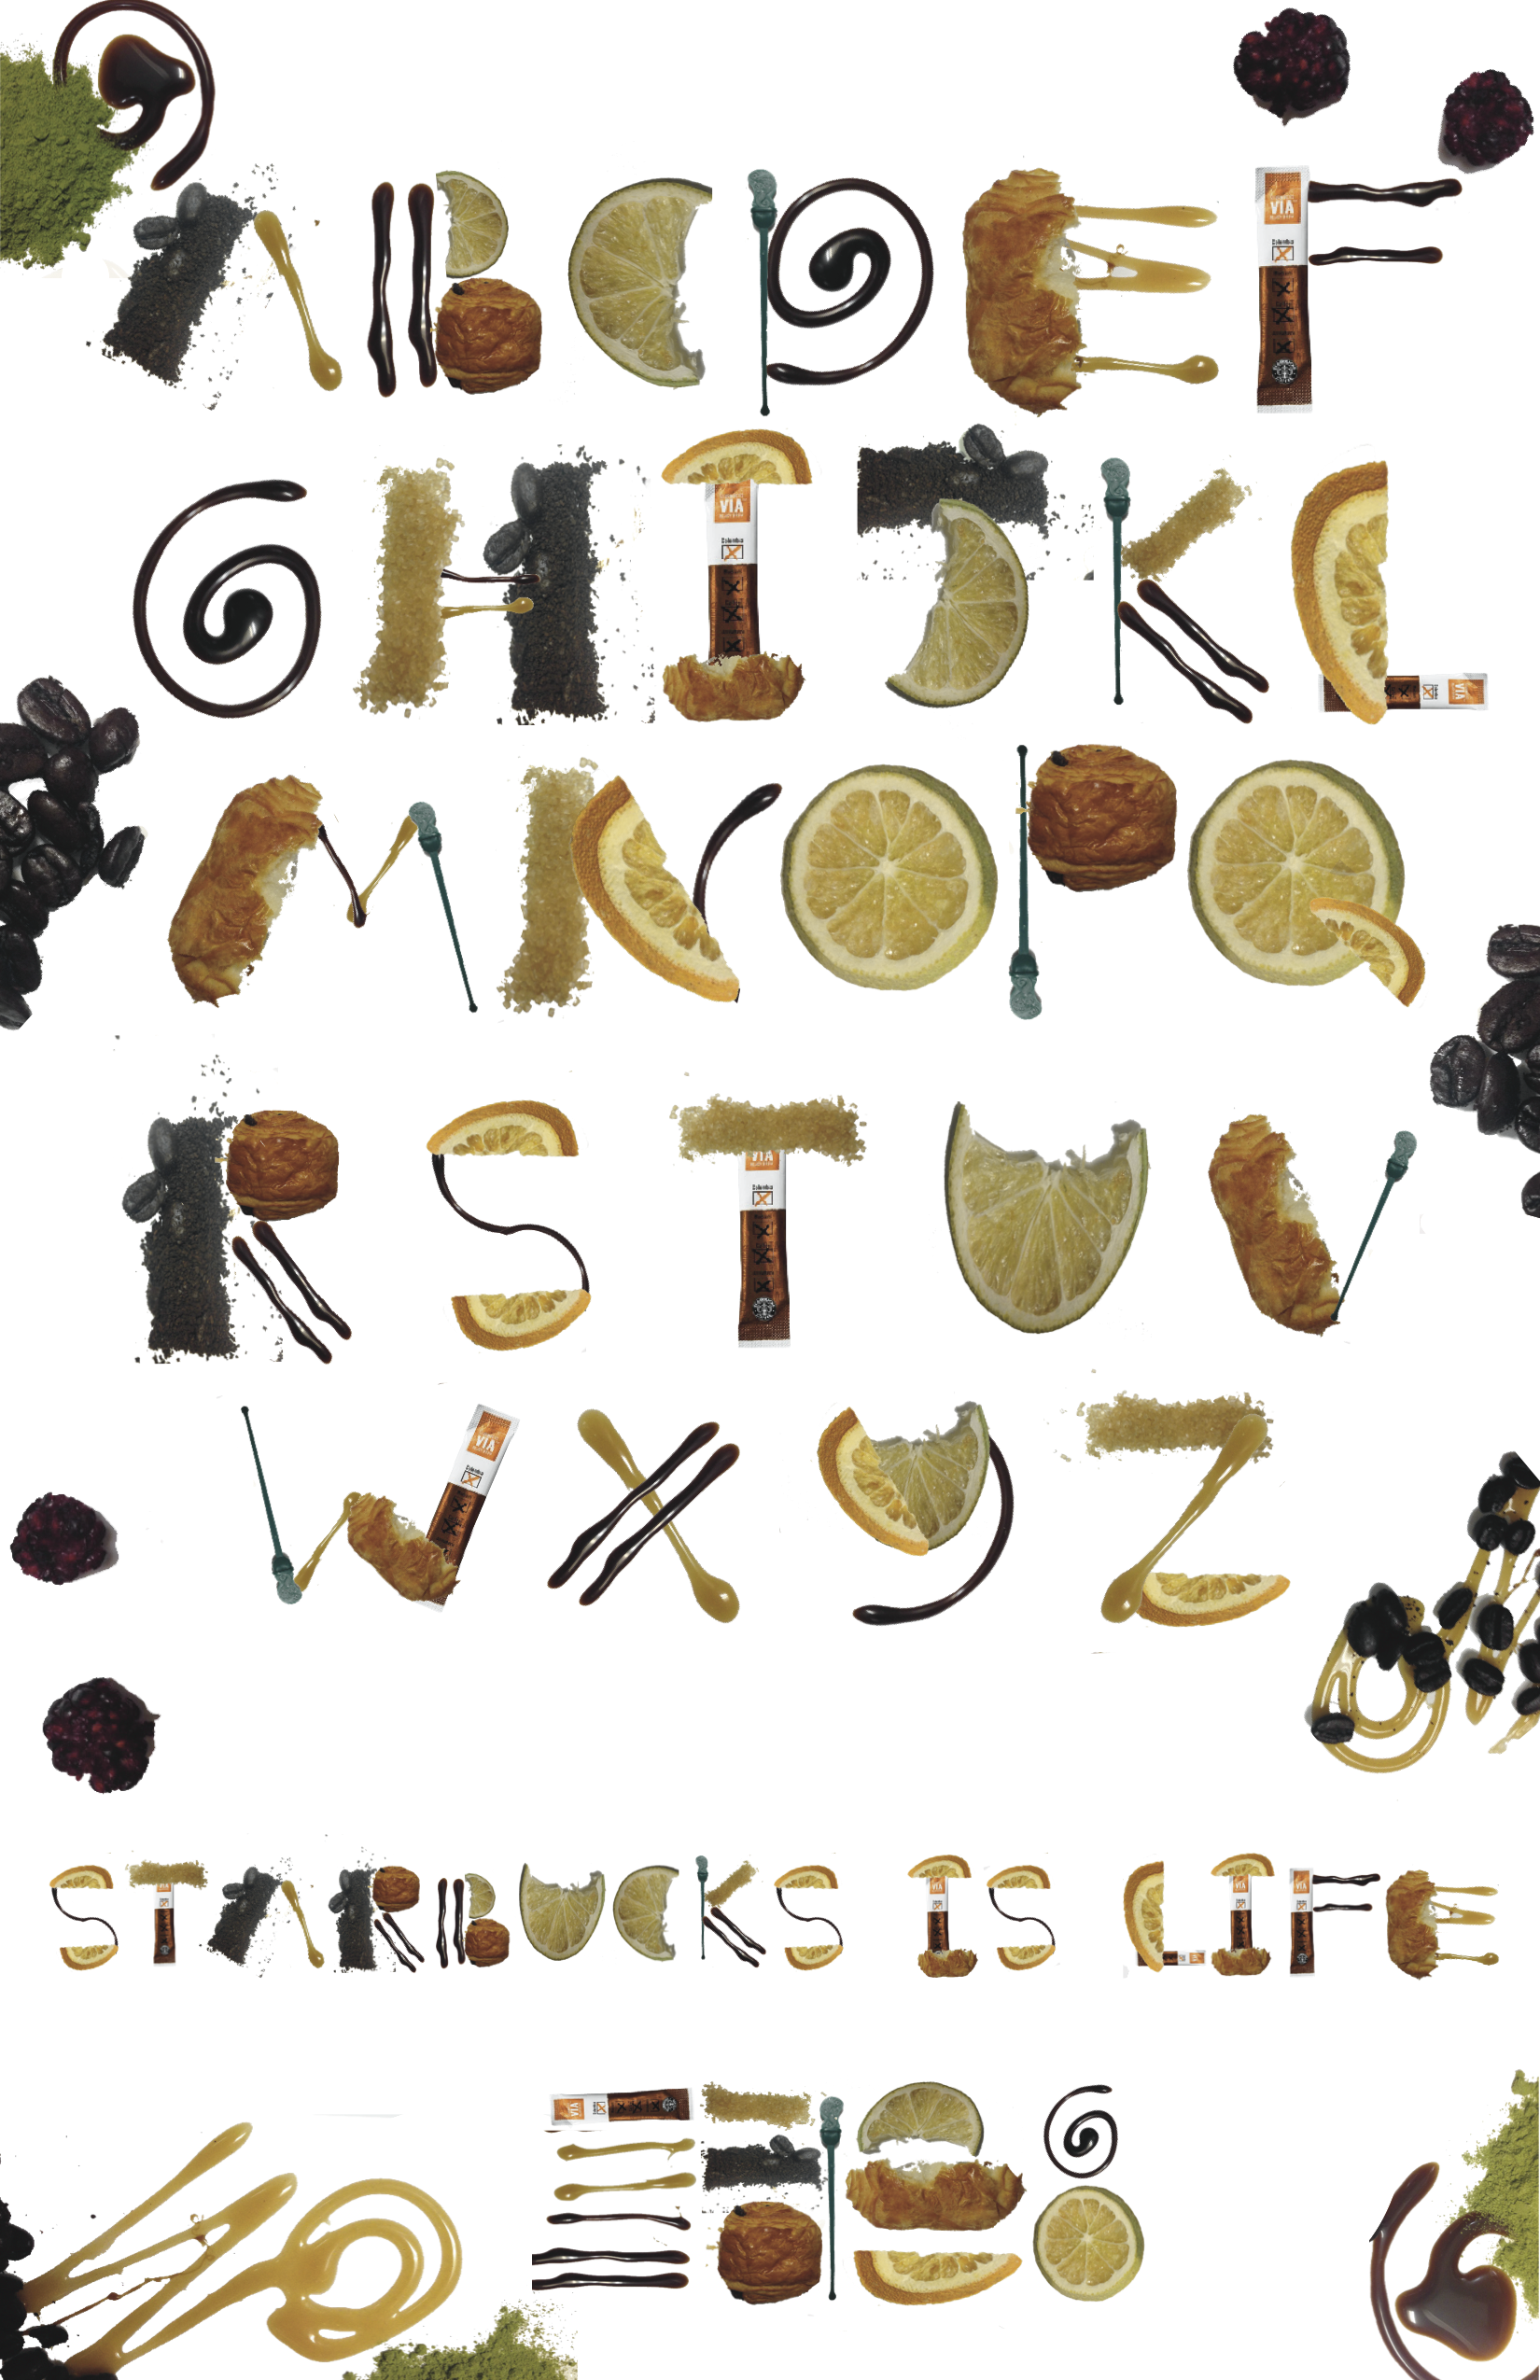 Starbucks Modular Typography Project  // Cornish College of the Arts Typography project to design a typeface made up of repeated elements to make a modular typeface. Made up of photographed ingredients, elements and items found at a Starbucks cafe, that were then photoshopped and designed to make the finished typeface.